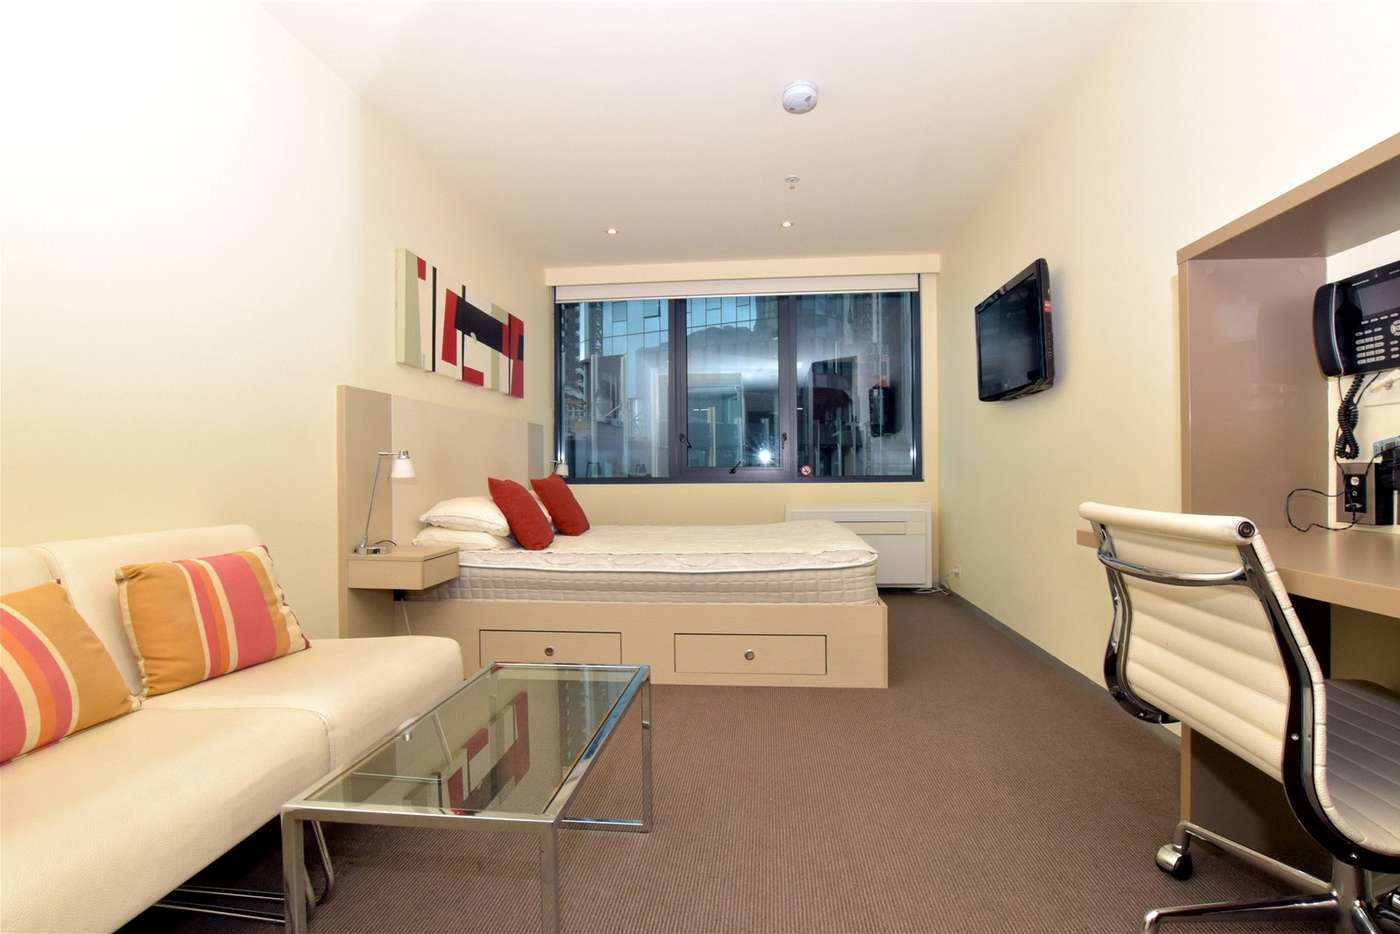 Main view of Homely studio listing, 509/181 ABeckett Street, Melbourne VIC 3000